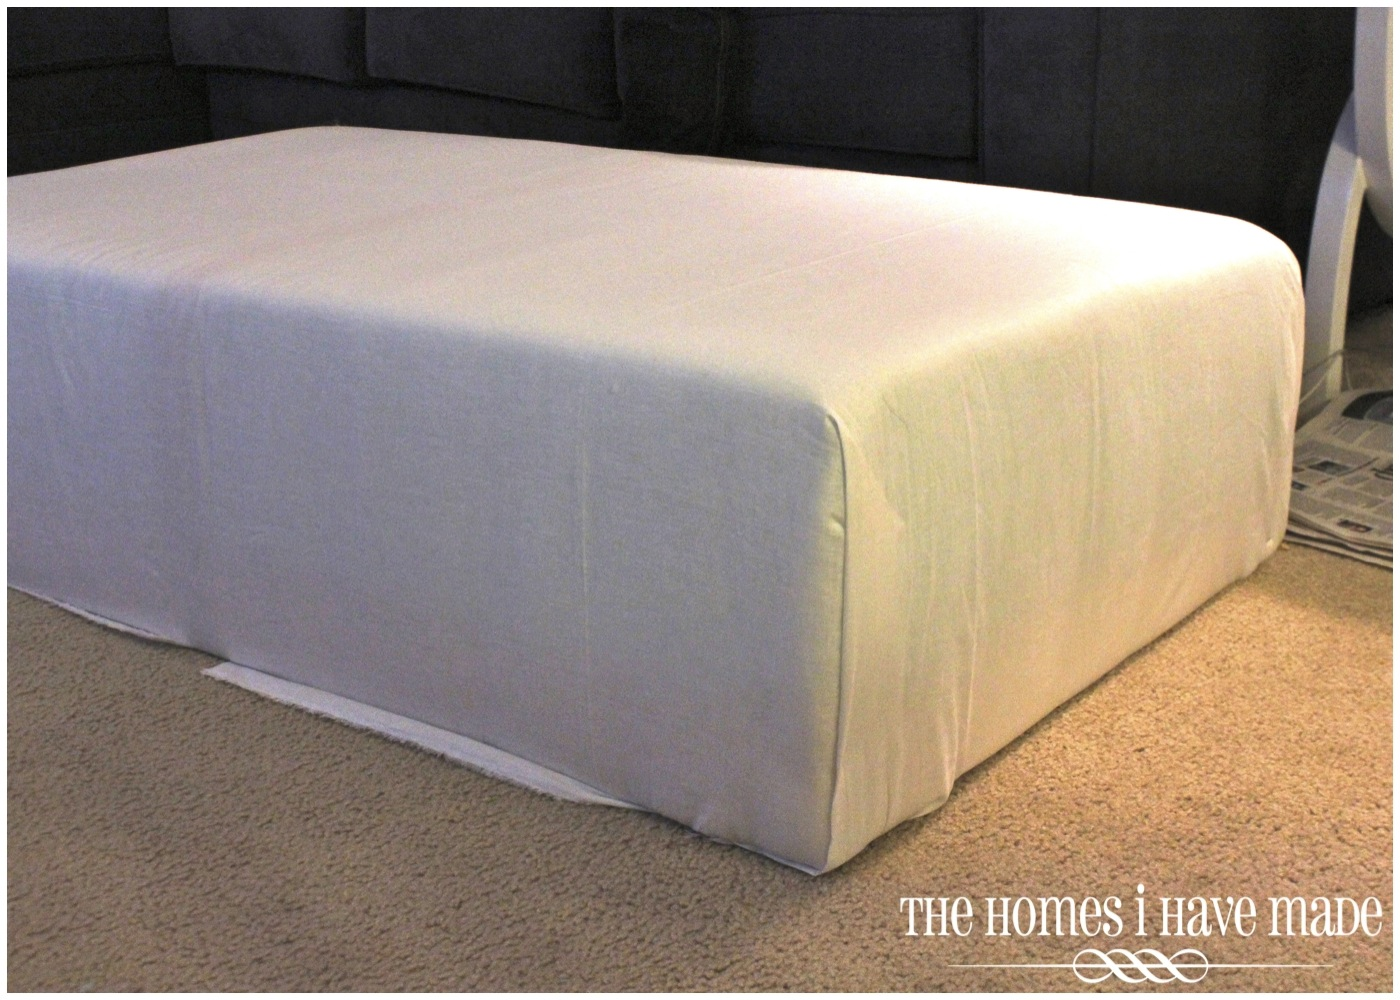 How to make an oversized ottoman tutorial the homes i have made we essentially did the same thing with the white fabric as the batting tug and stapleand at the corners we folded it nicely to avoid bulk solutioingenieria Image collections